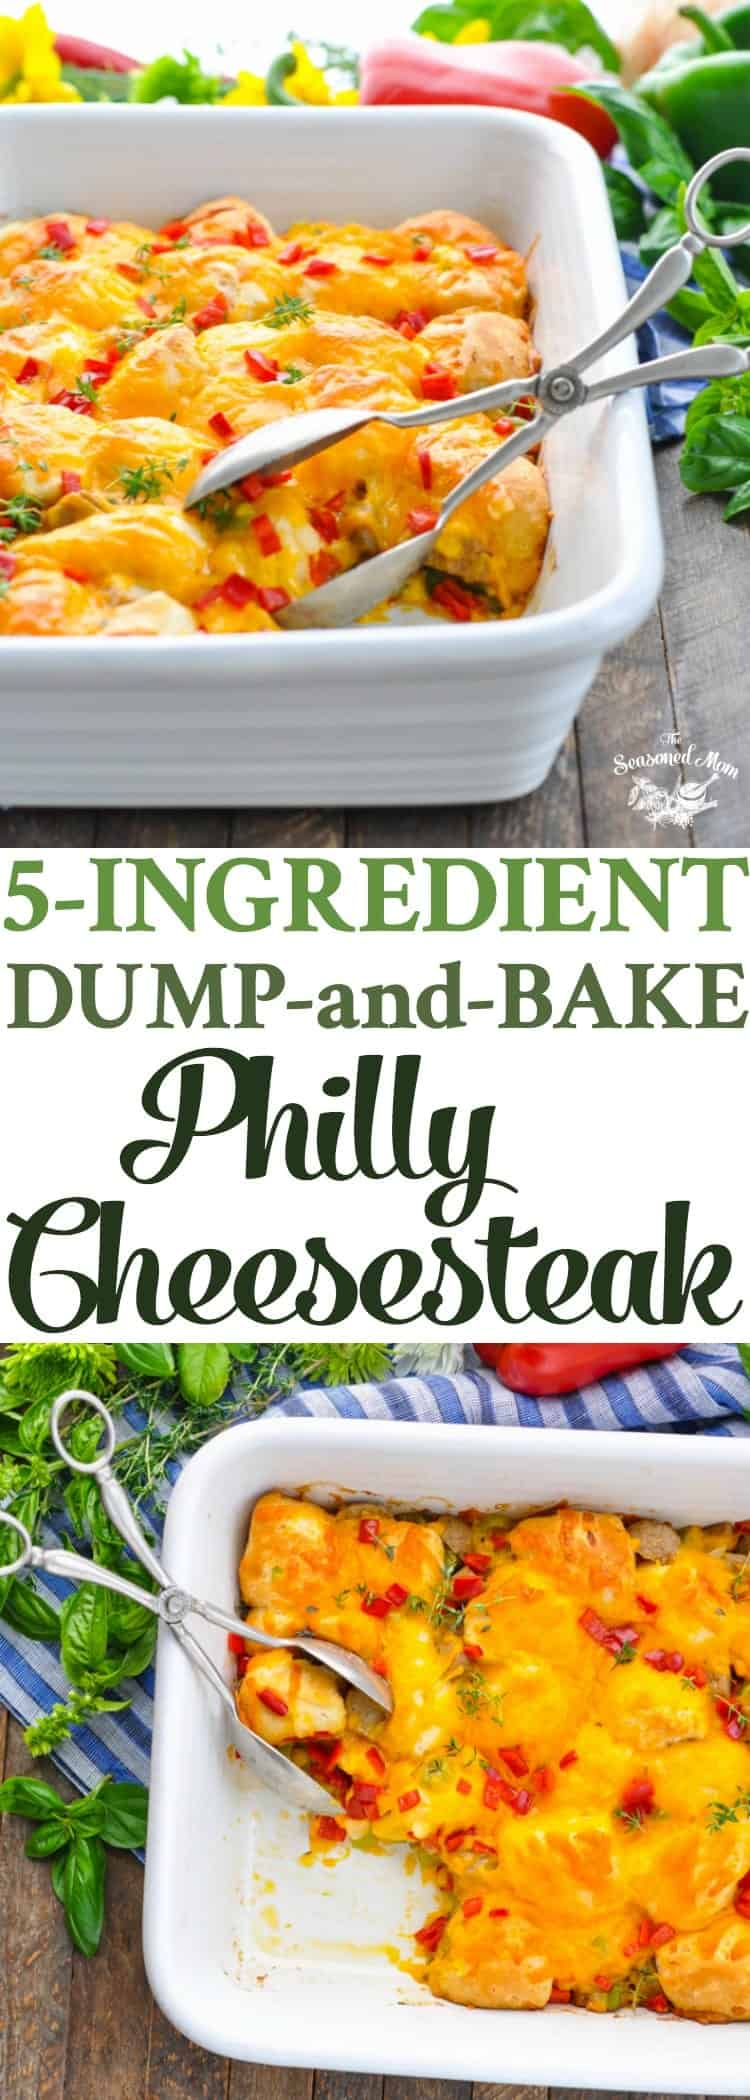 This 5-Ingredient Dump-and-Bake Philly Cheesesteak is an easy dinner recipe for busy nights! One Pot Meals | Beef Recipes | Casseroles | Dinner Ideas #dinner #onedish #casserole #beef